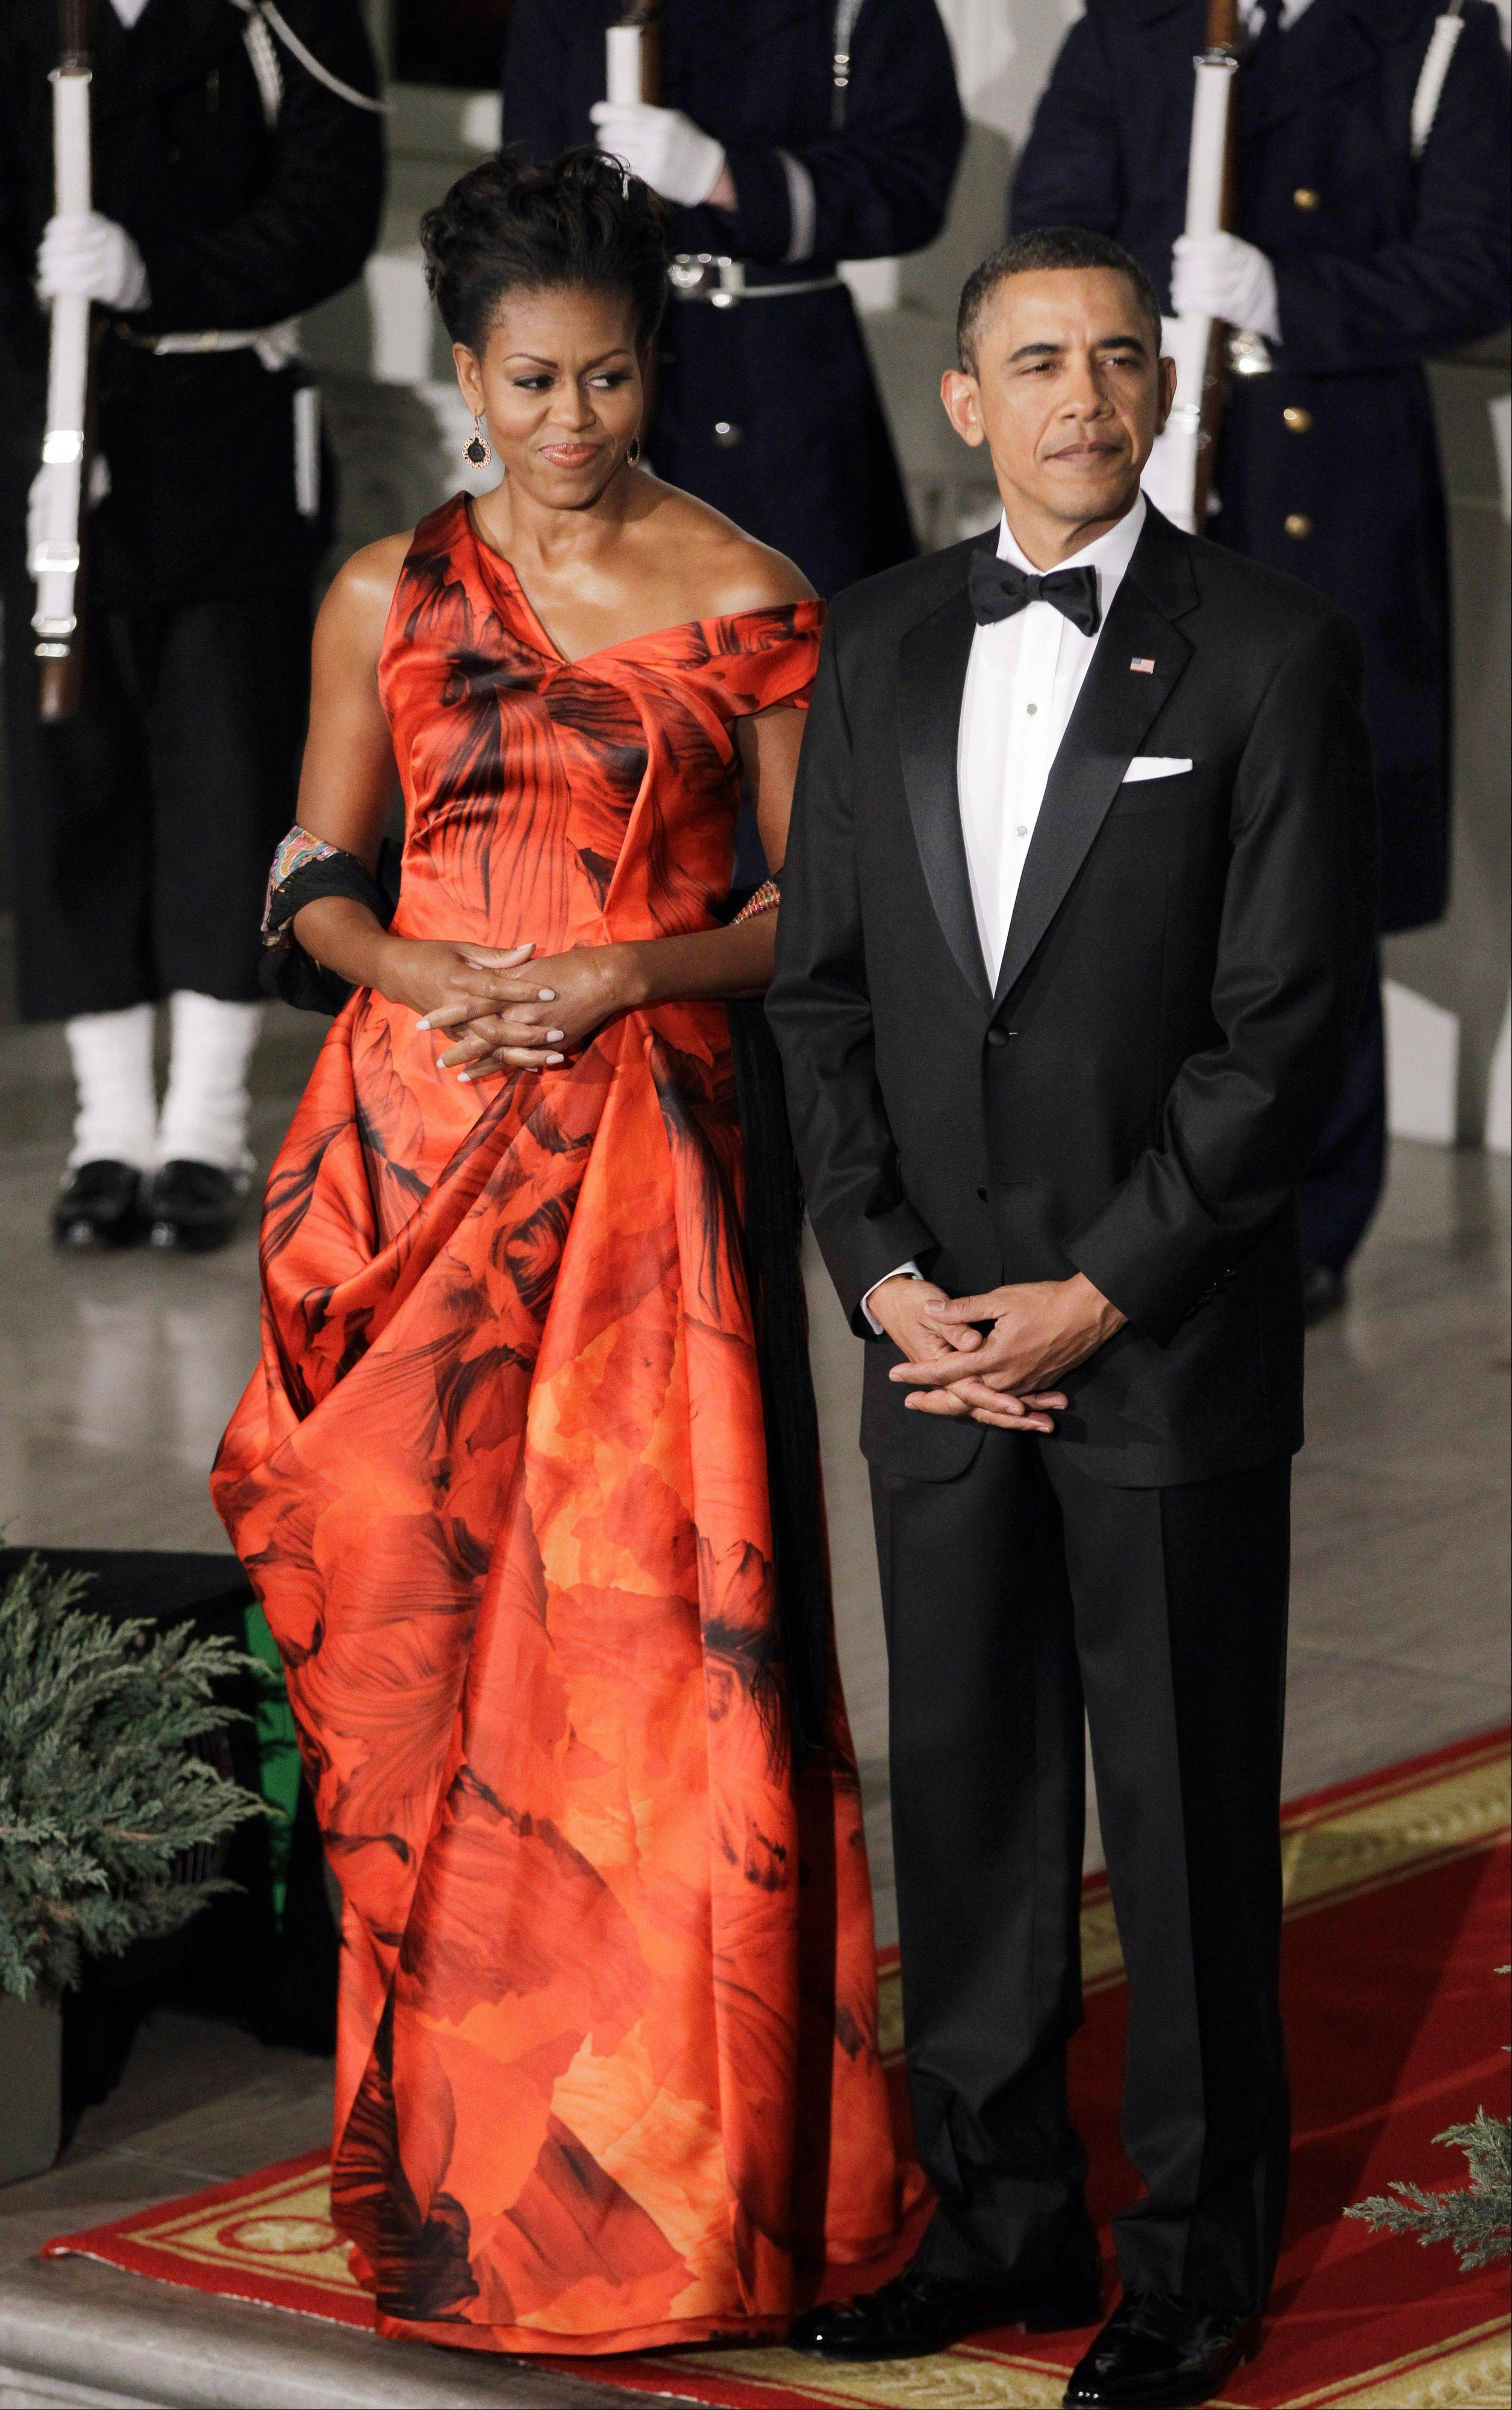 President Barack Obama and first lady Michelle Obama at the North Portico of the White House in Washington during a State Dinner for China's President Hu Jintao. Michelle Obama is wearing a fiery red gown designed by Alexander McQueen.